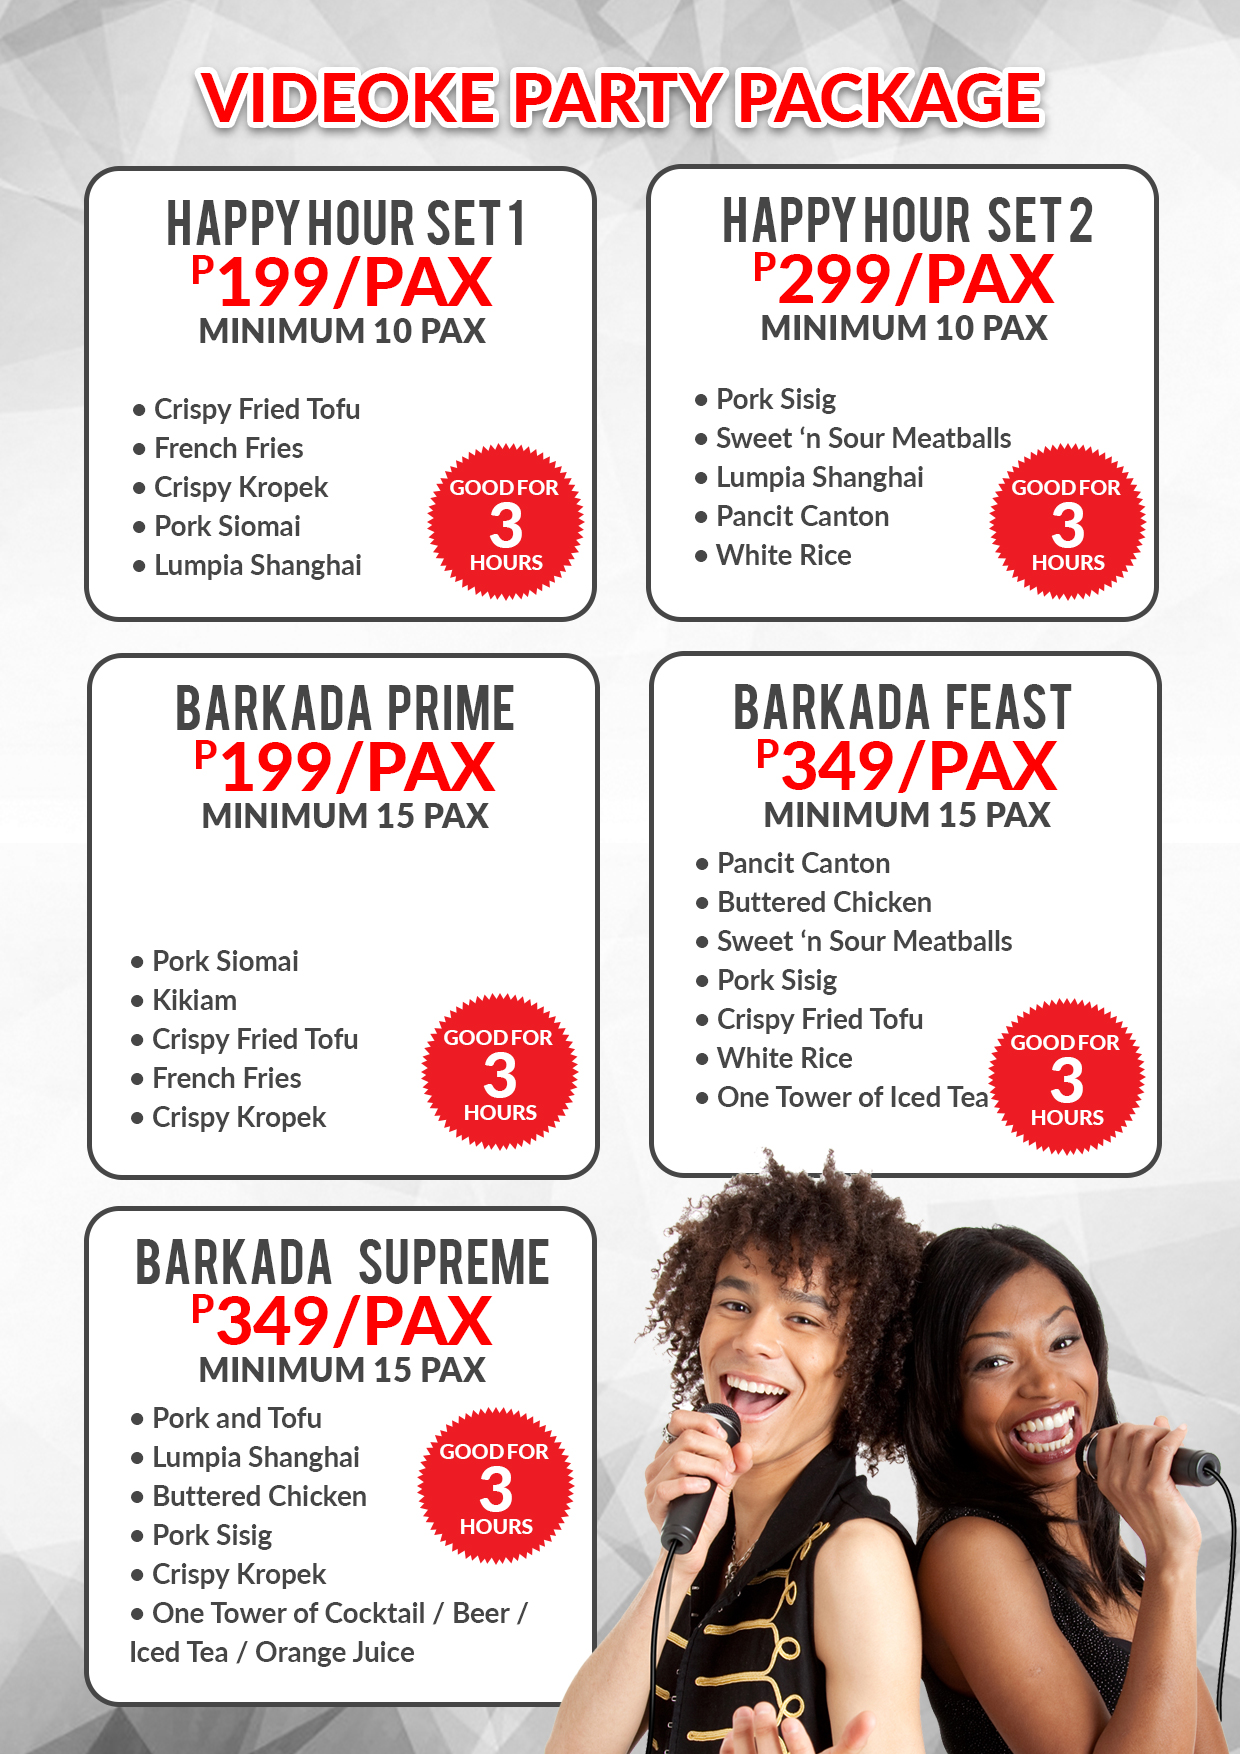 Videoke Promo Packages And Overnight Parties